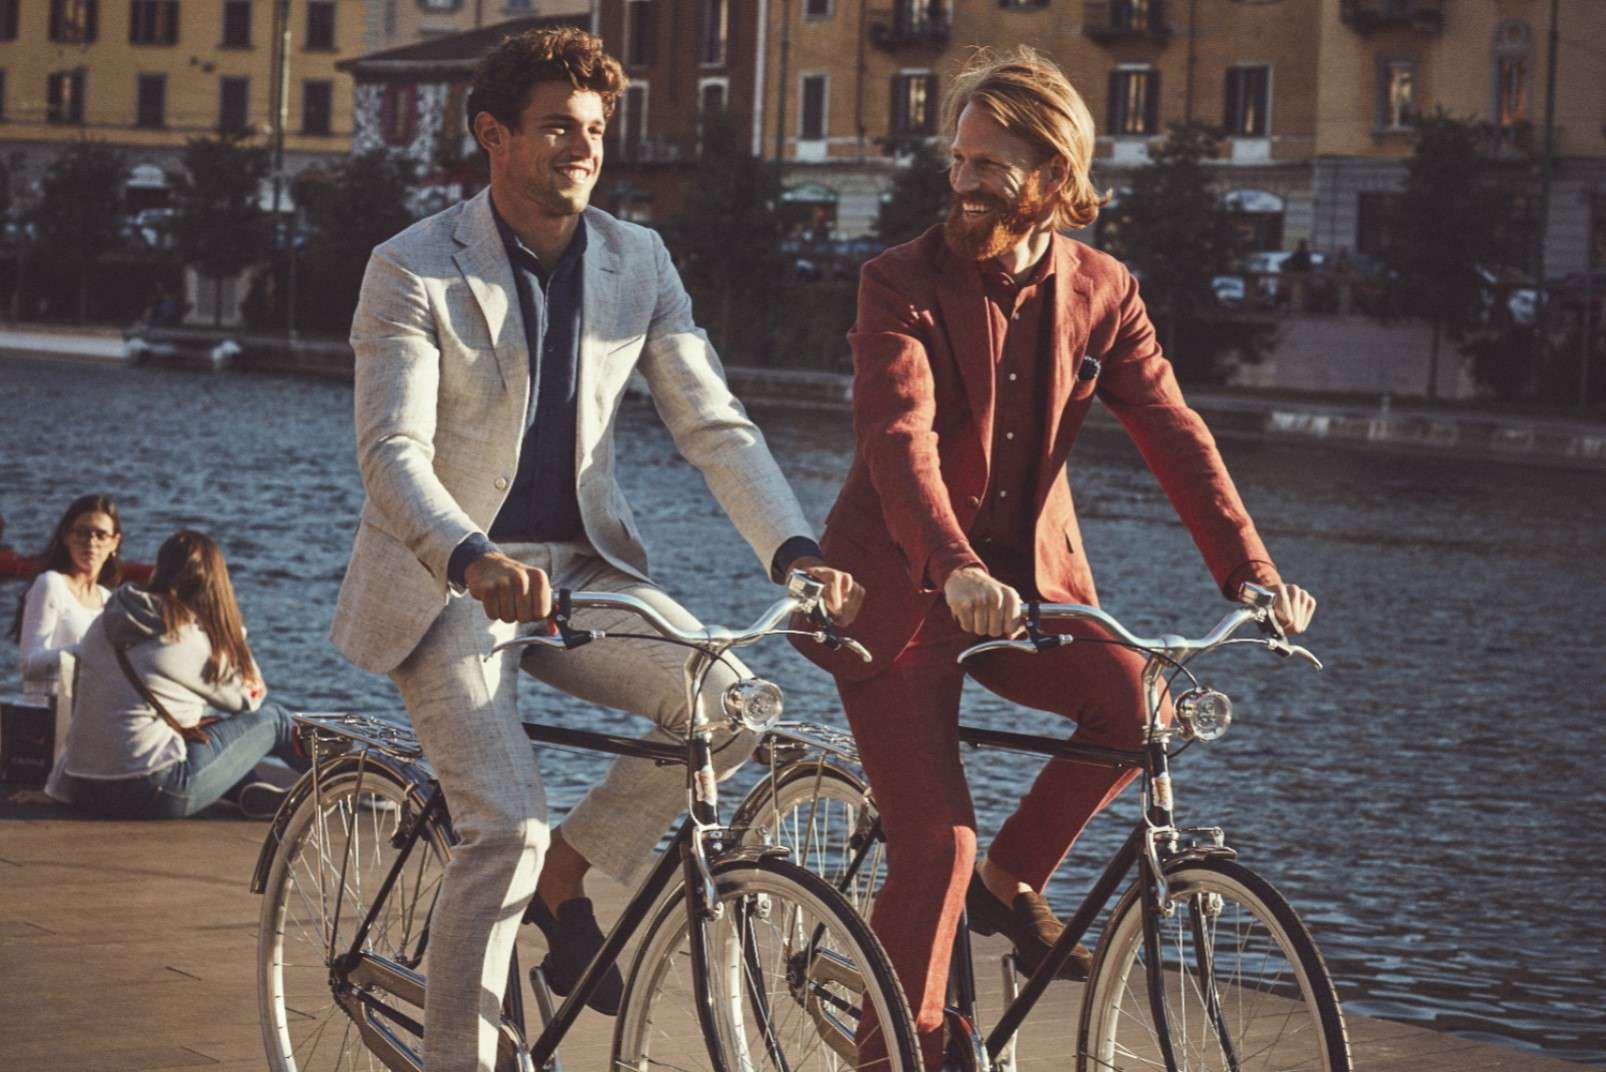 Linen suits with open-collar shirt